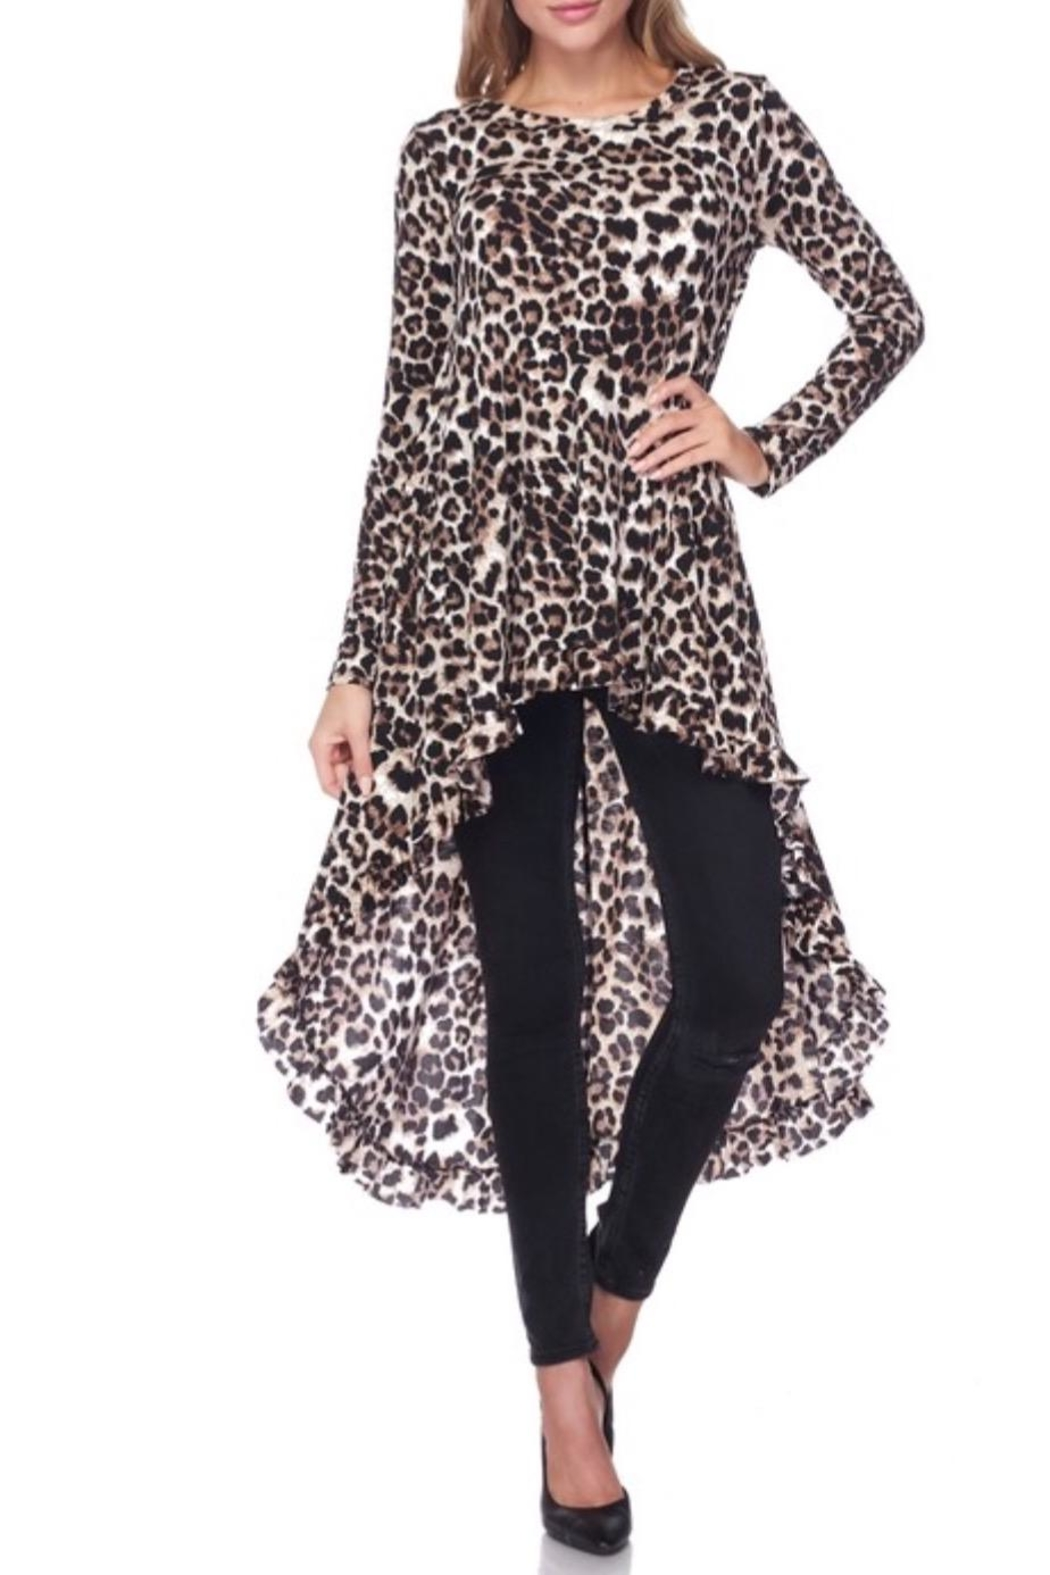 KITTY COUTURE  Leopard Print Tunic - Main Image